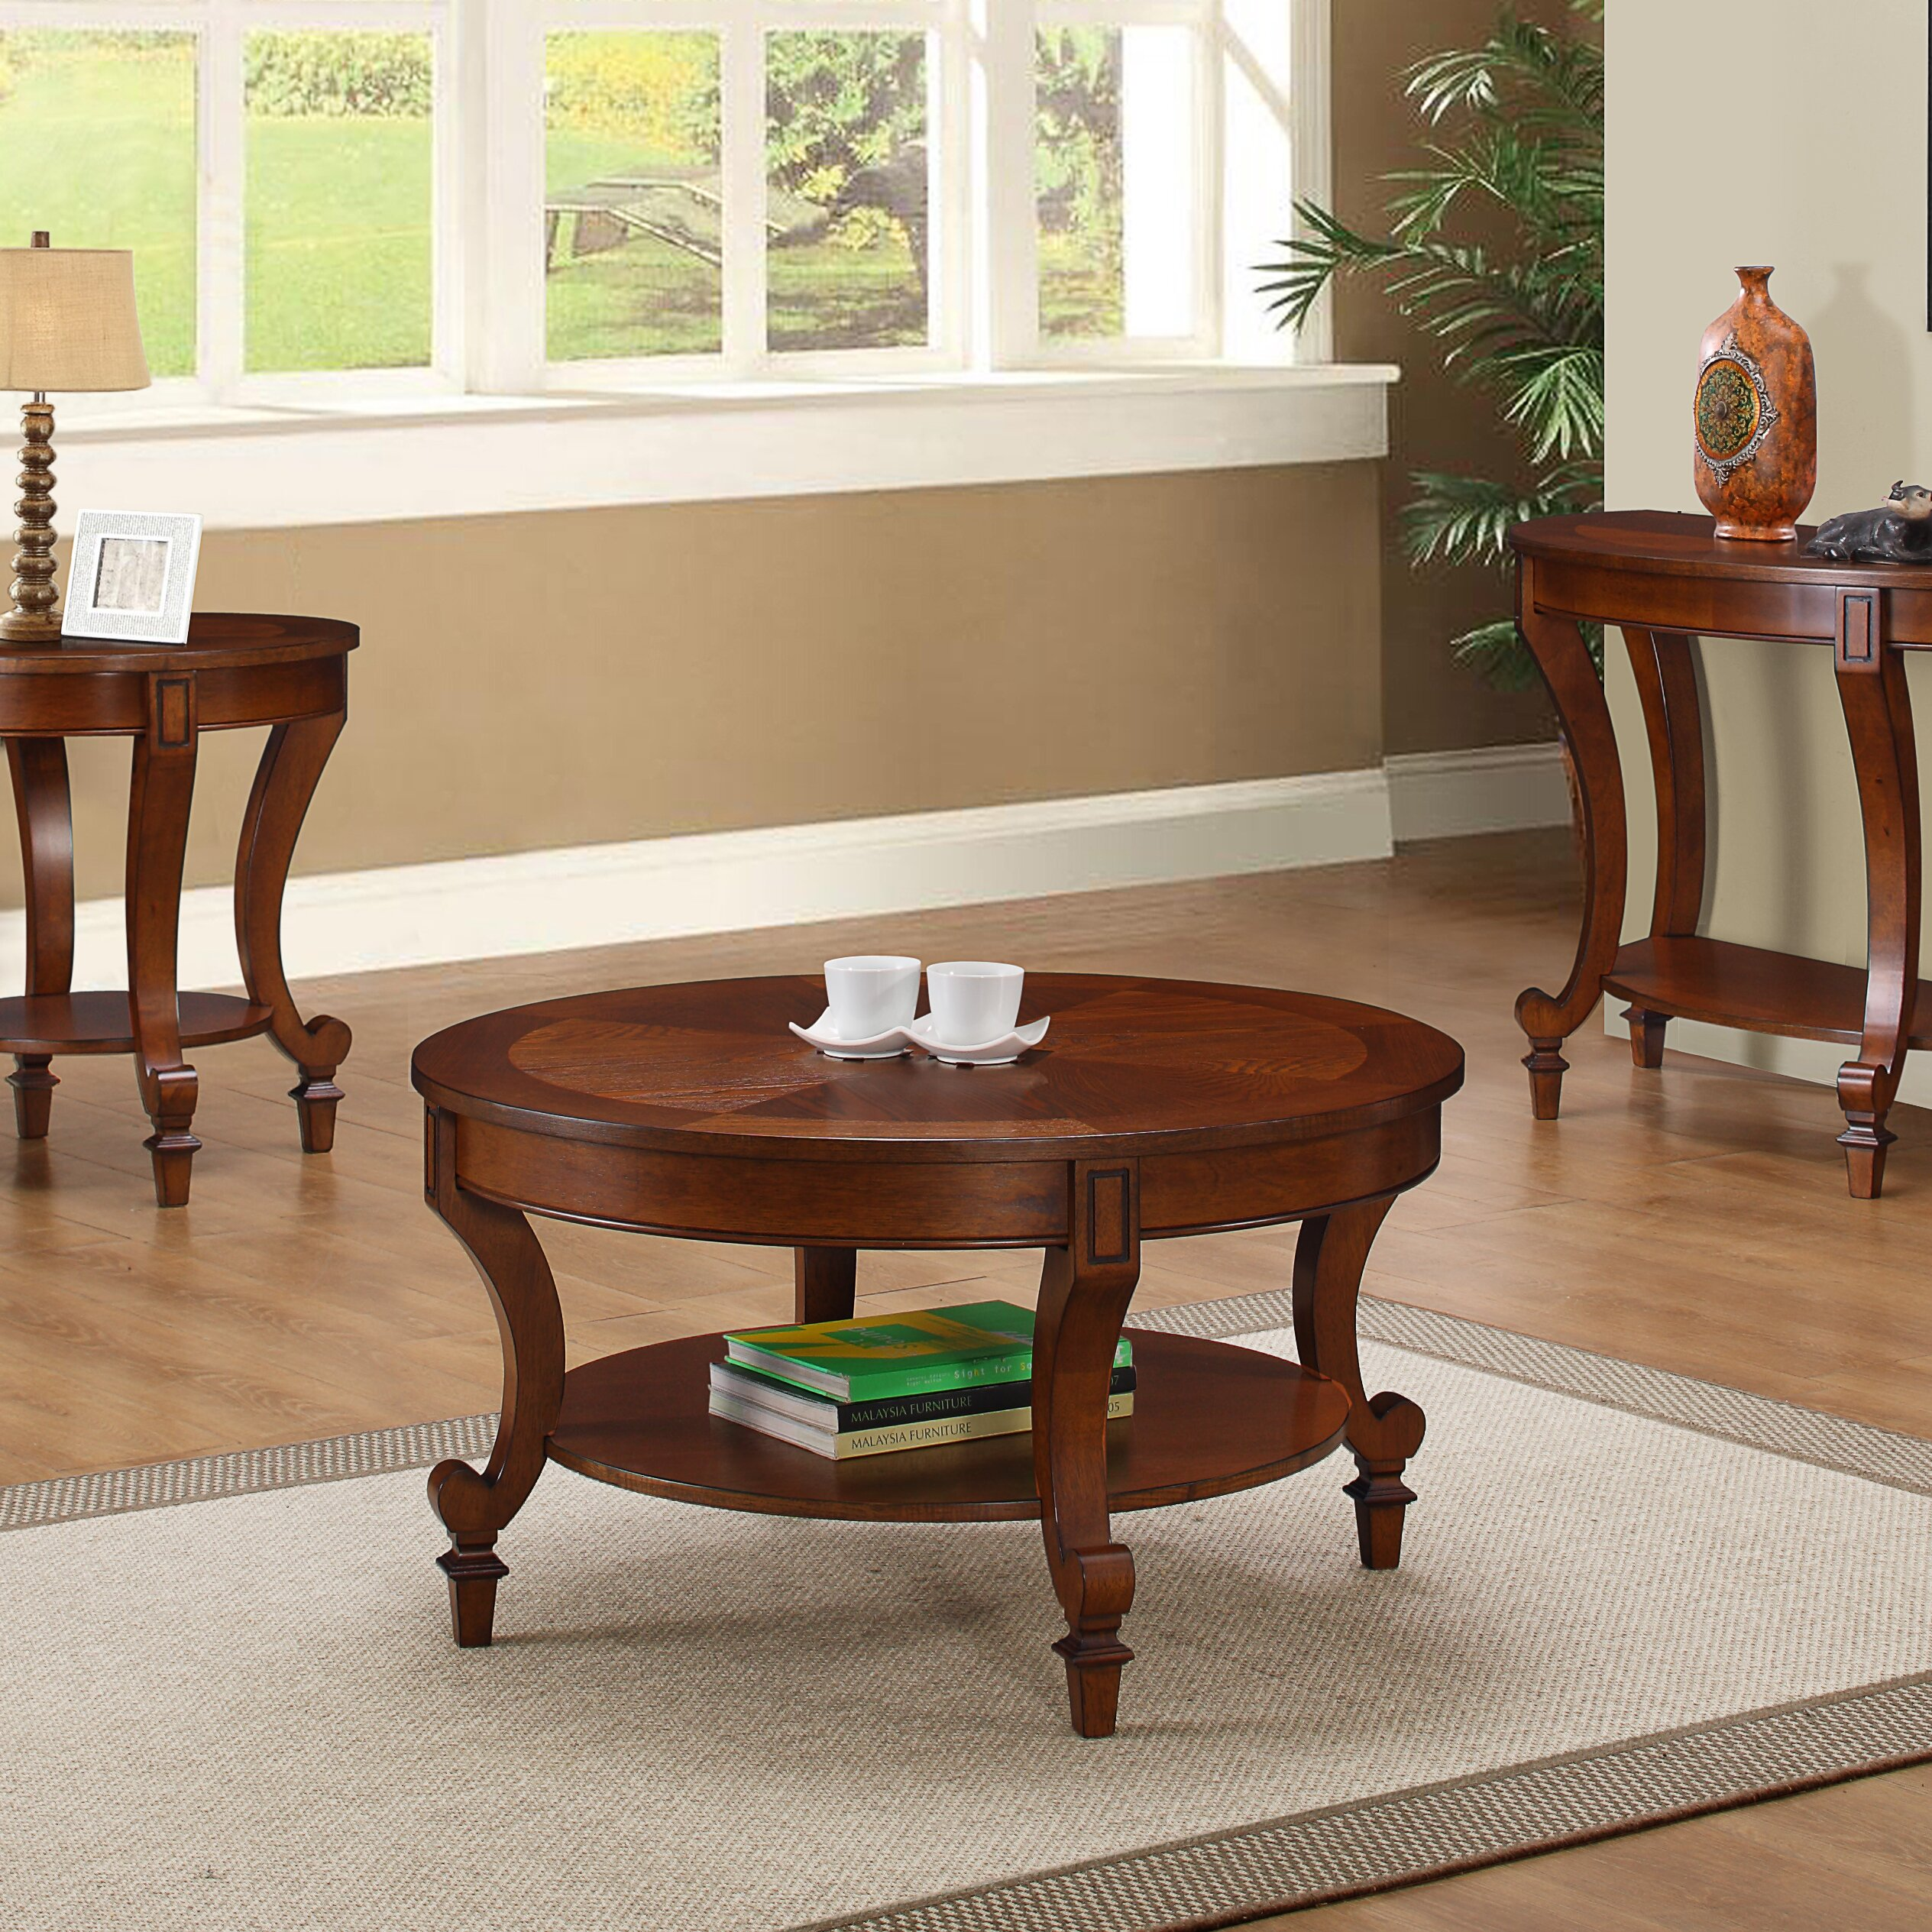 Three Posts Curved Brown Coffee Table Set Reviews Wayfair